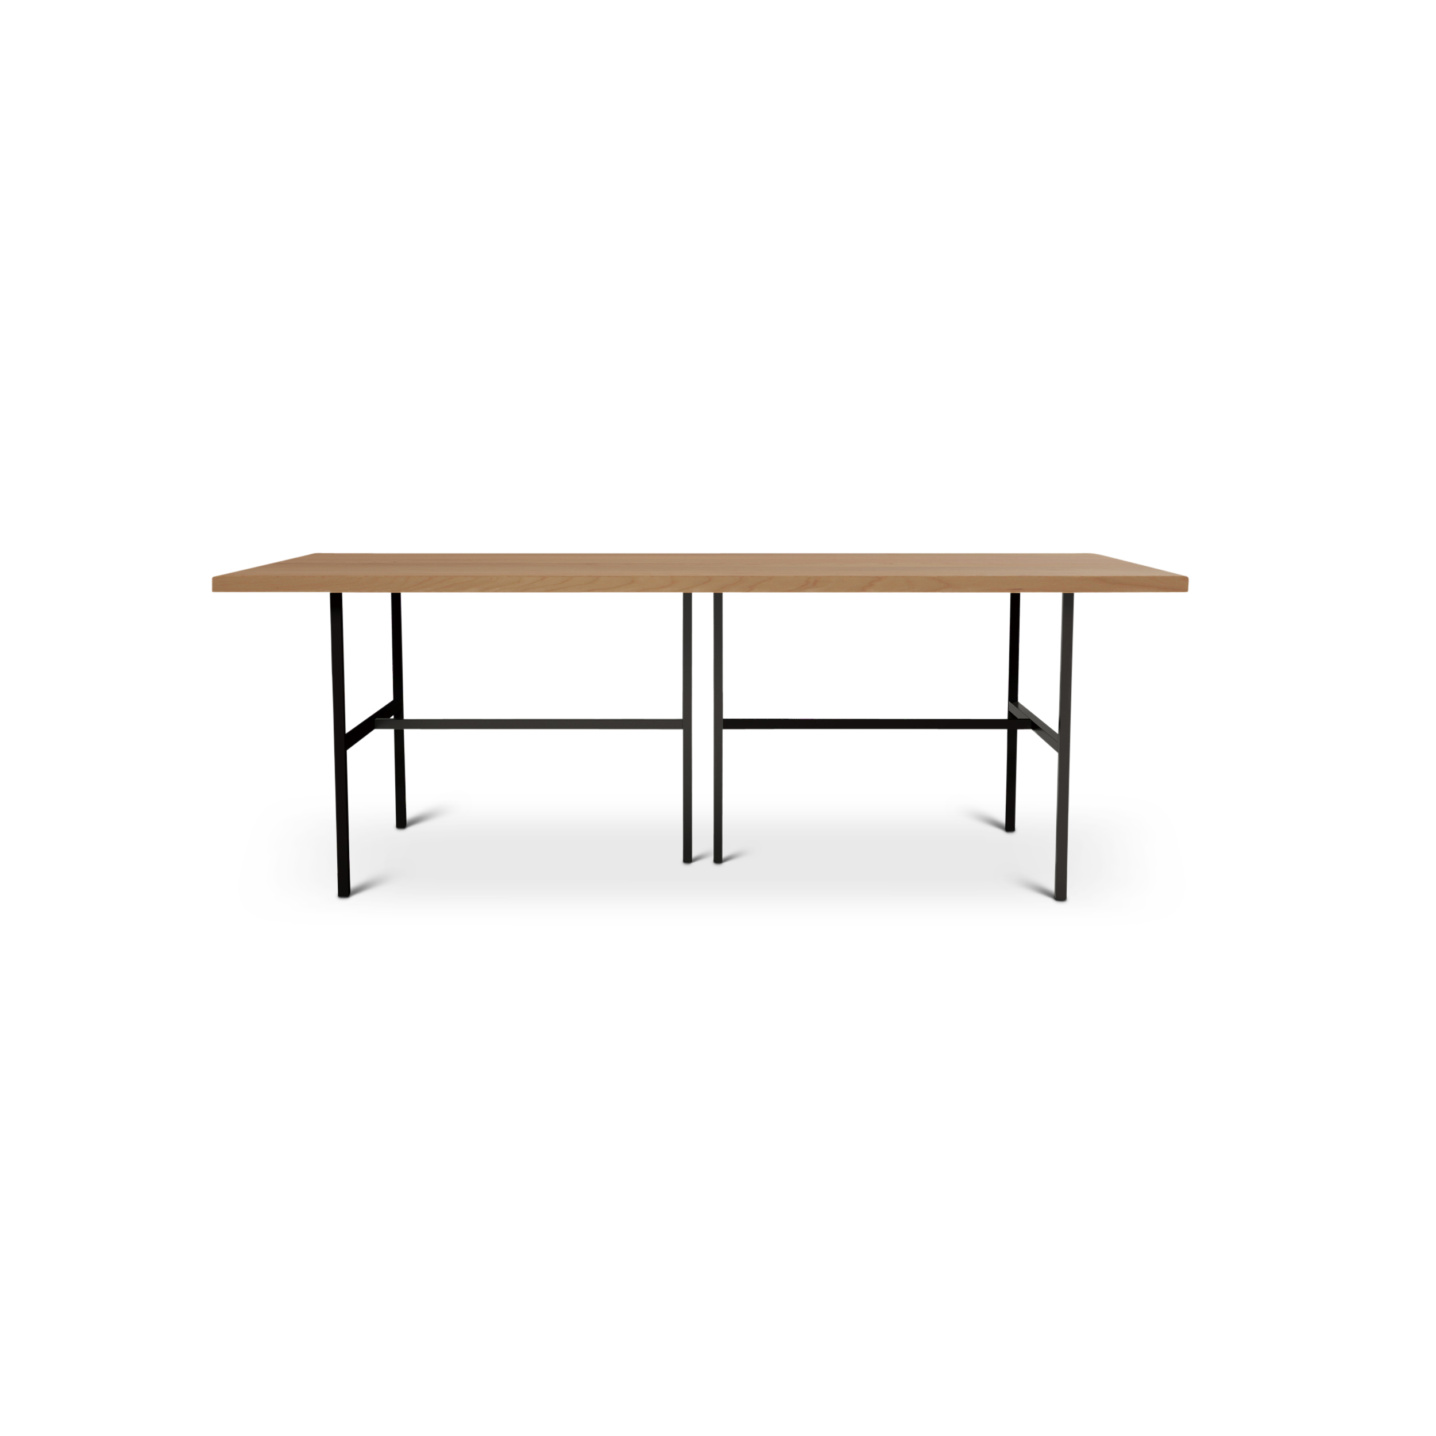 7 foot solid wood cherry dining room table with metal legs